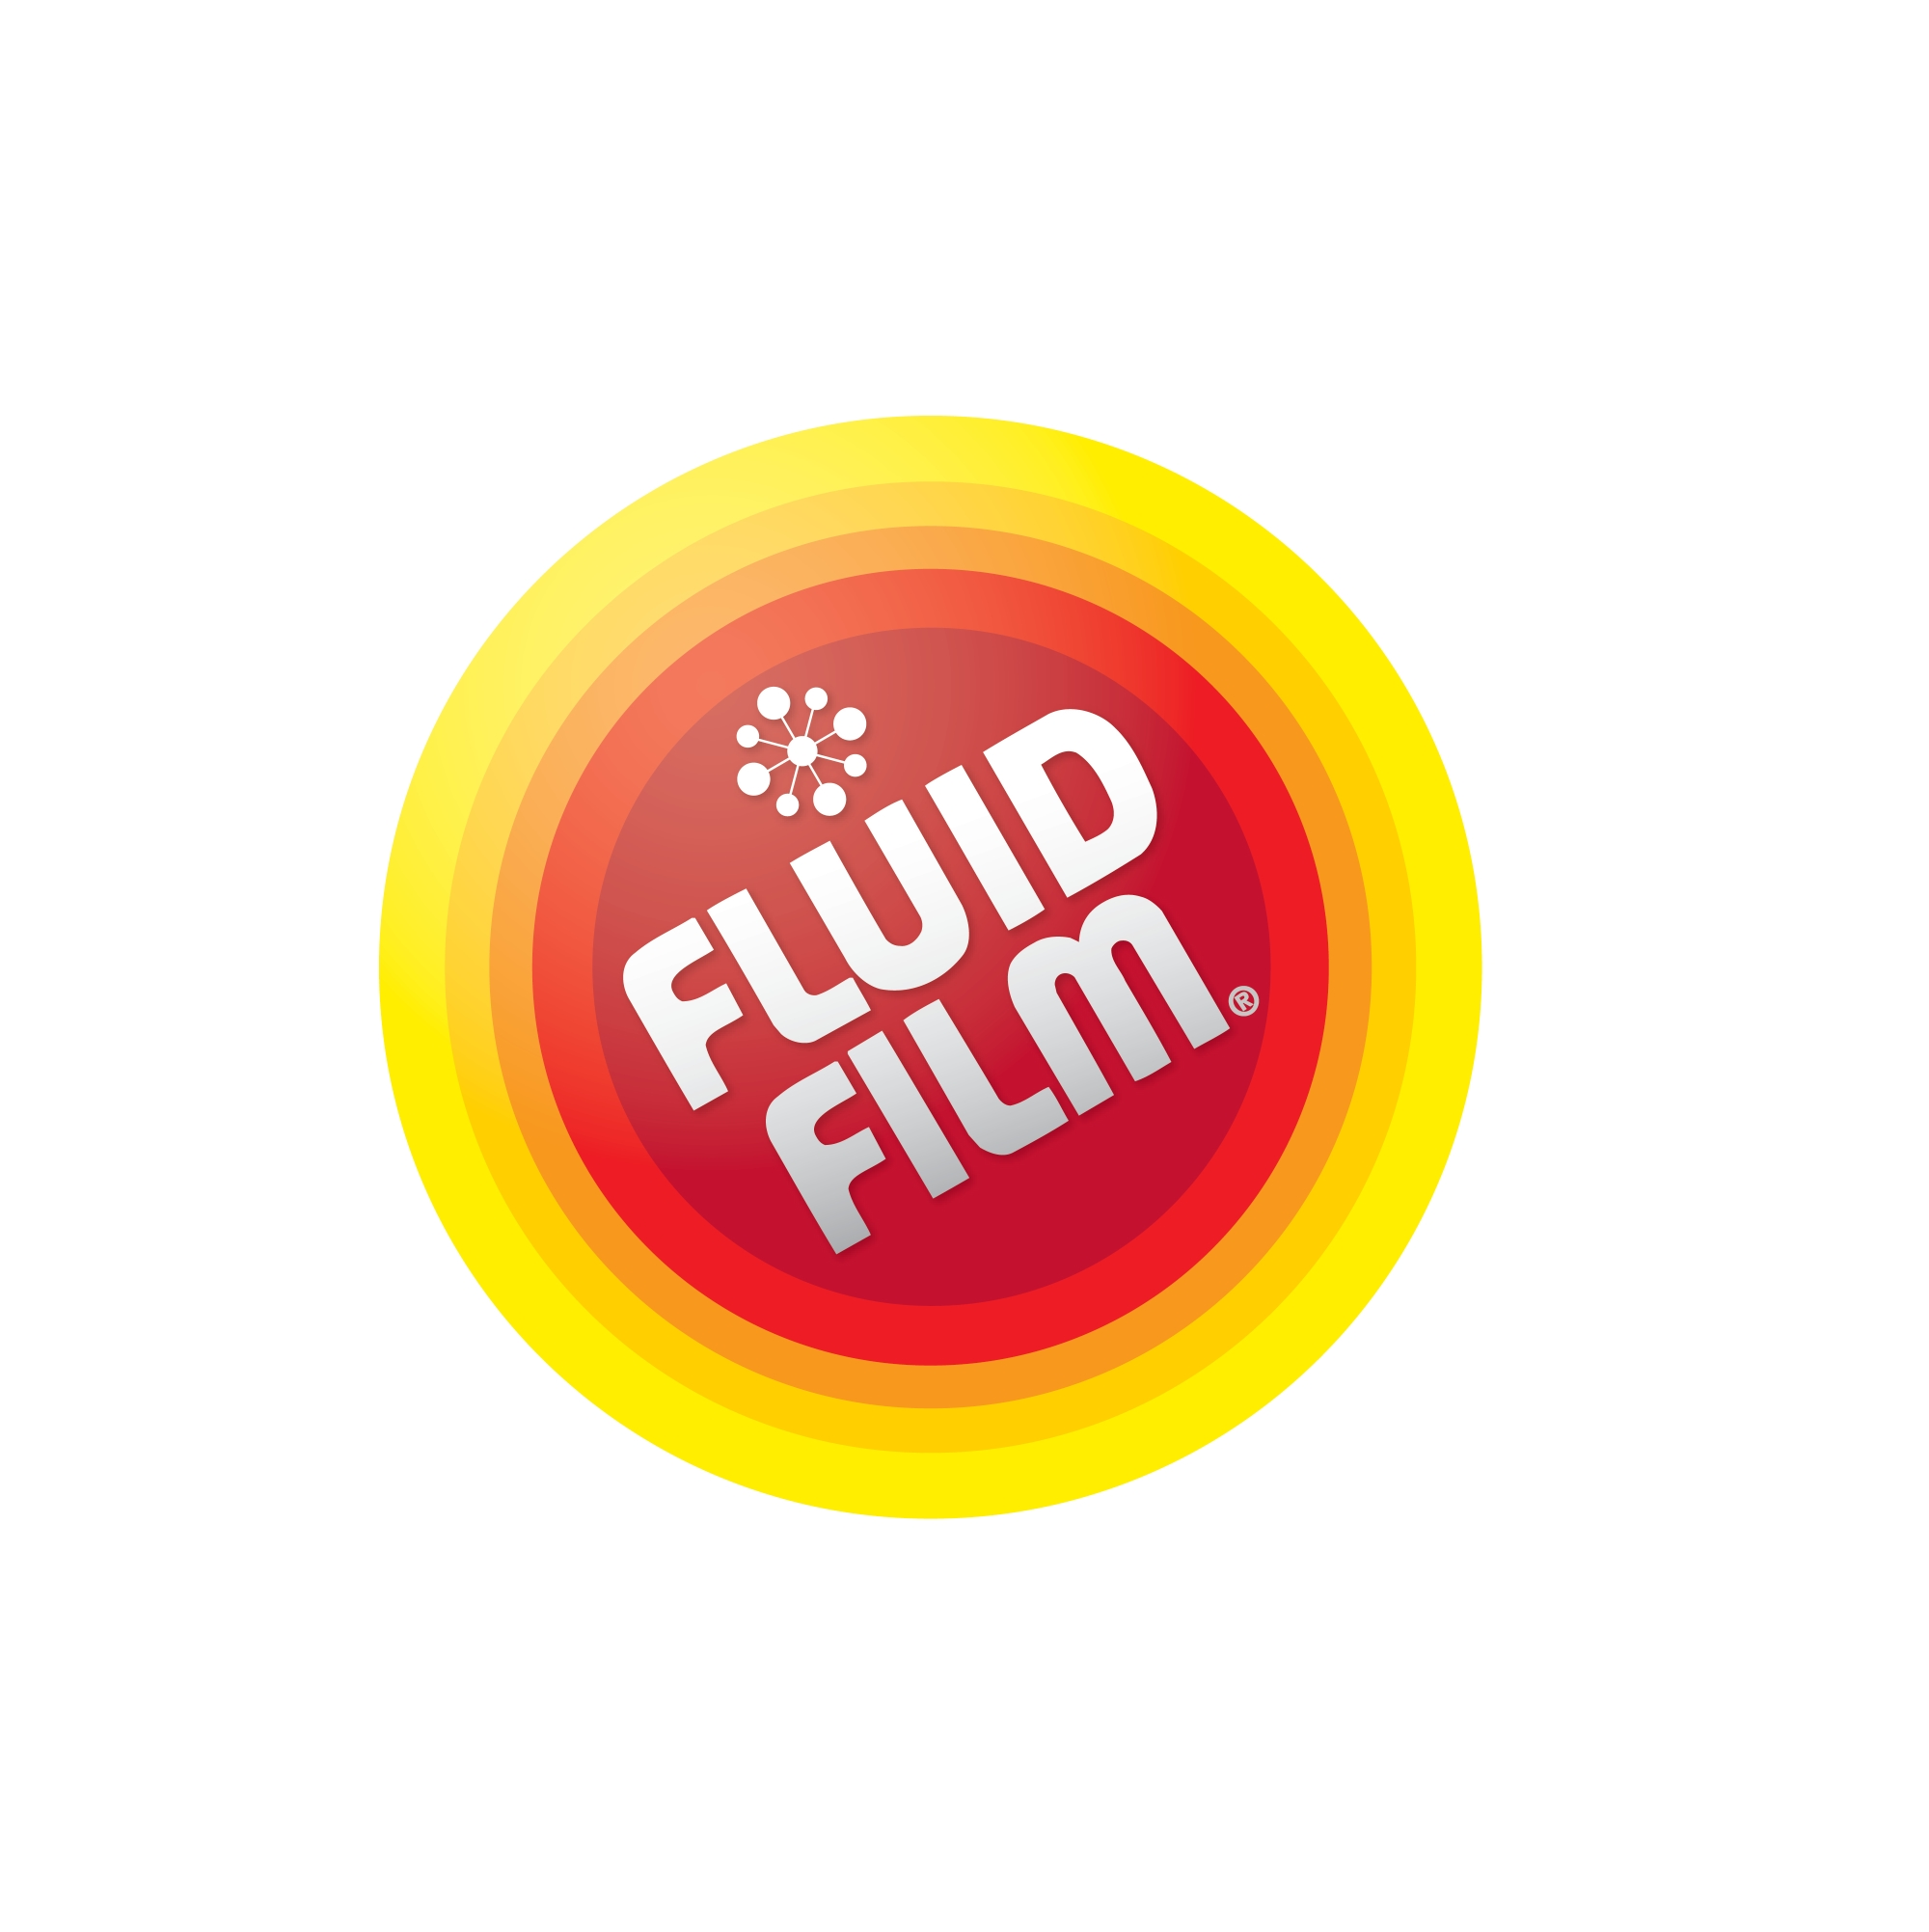 Fluid Film, Perma Film, Multi Film